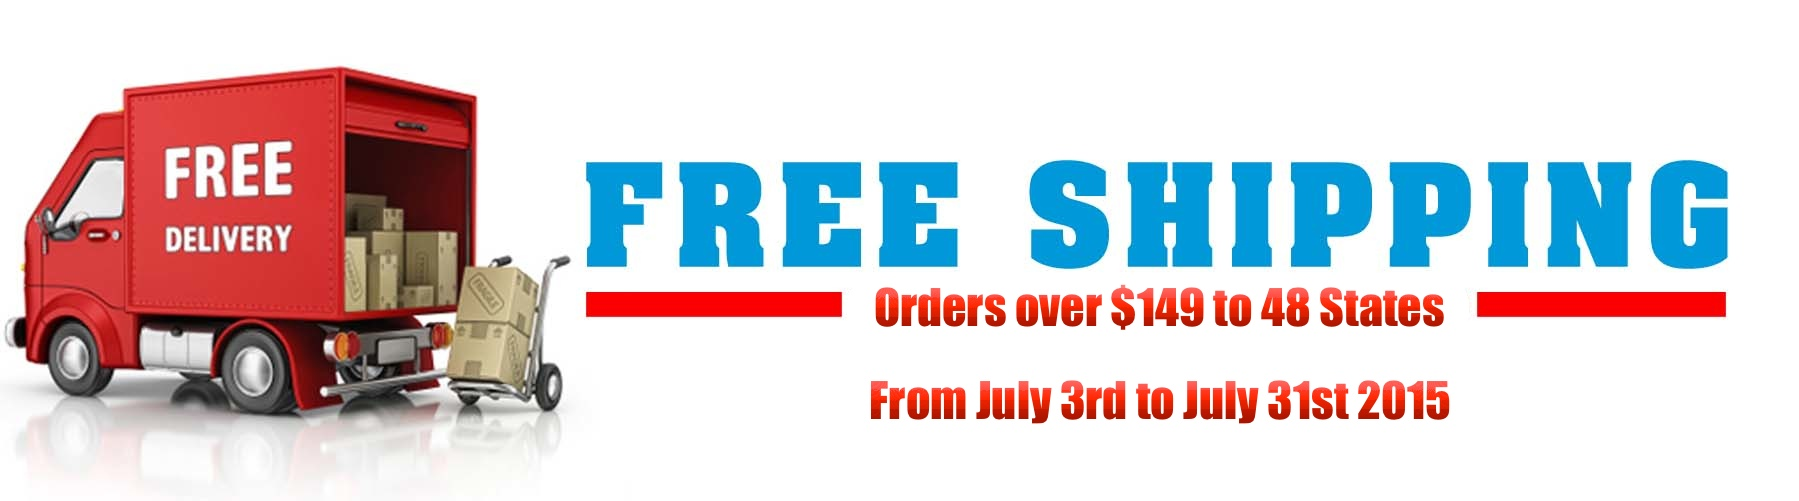 July Free Shipping Retail